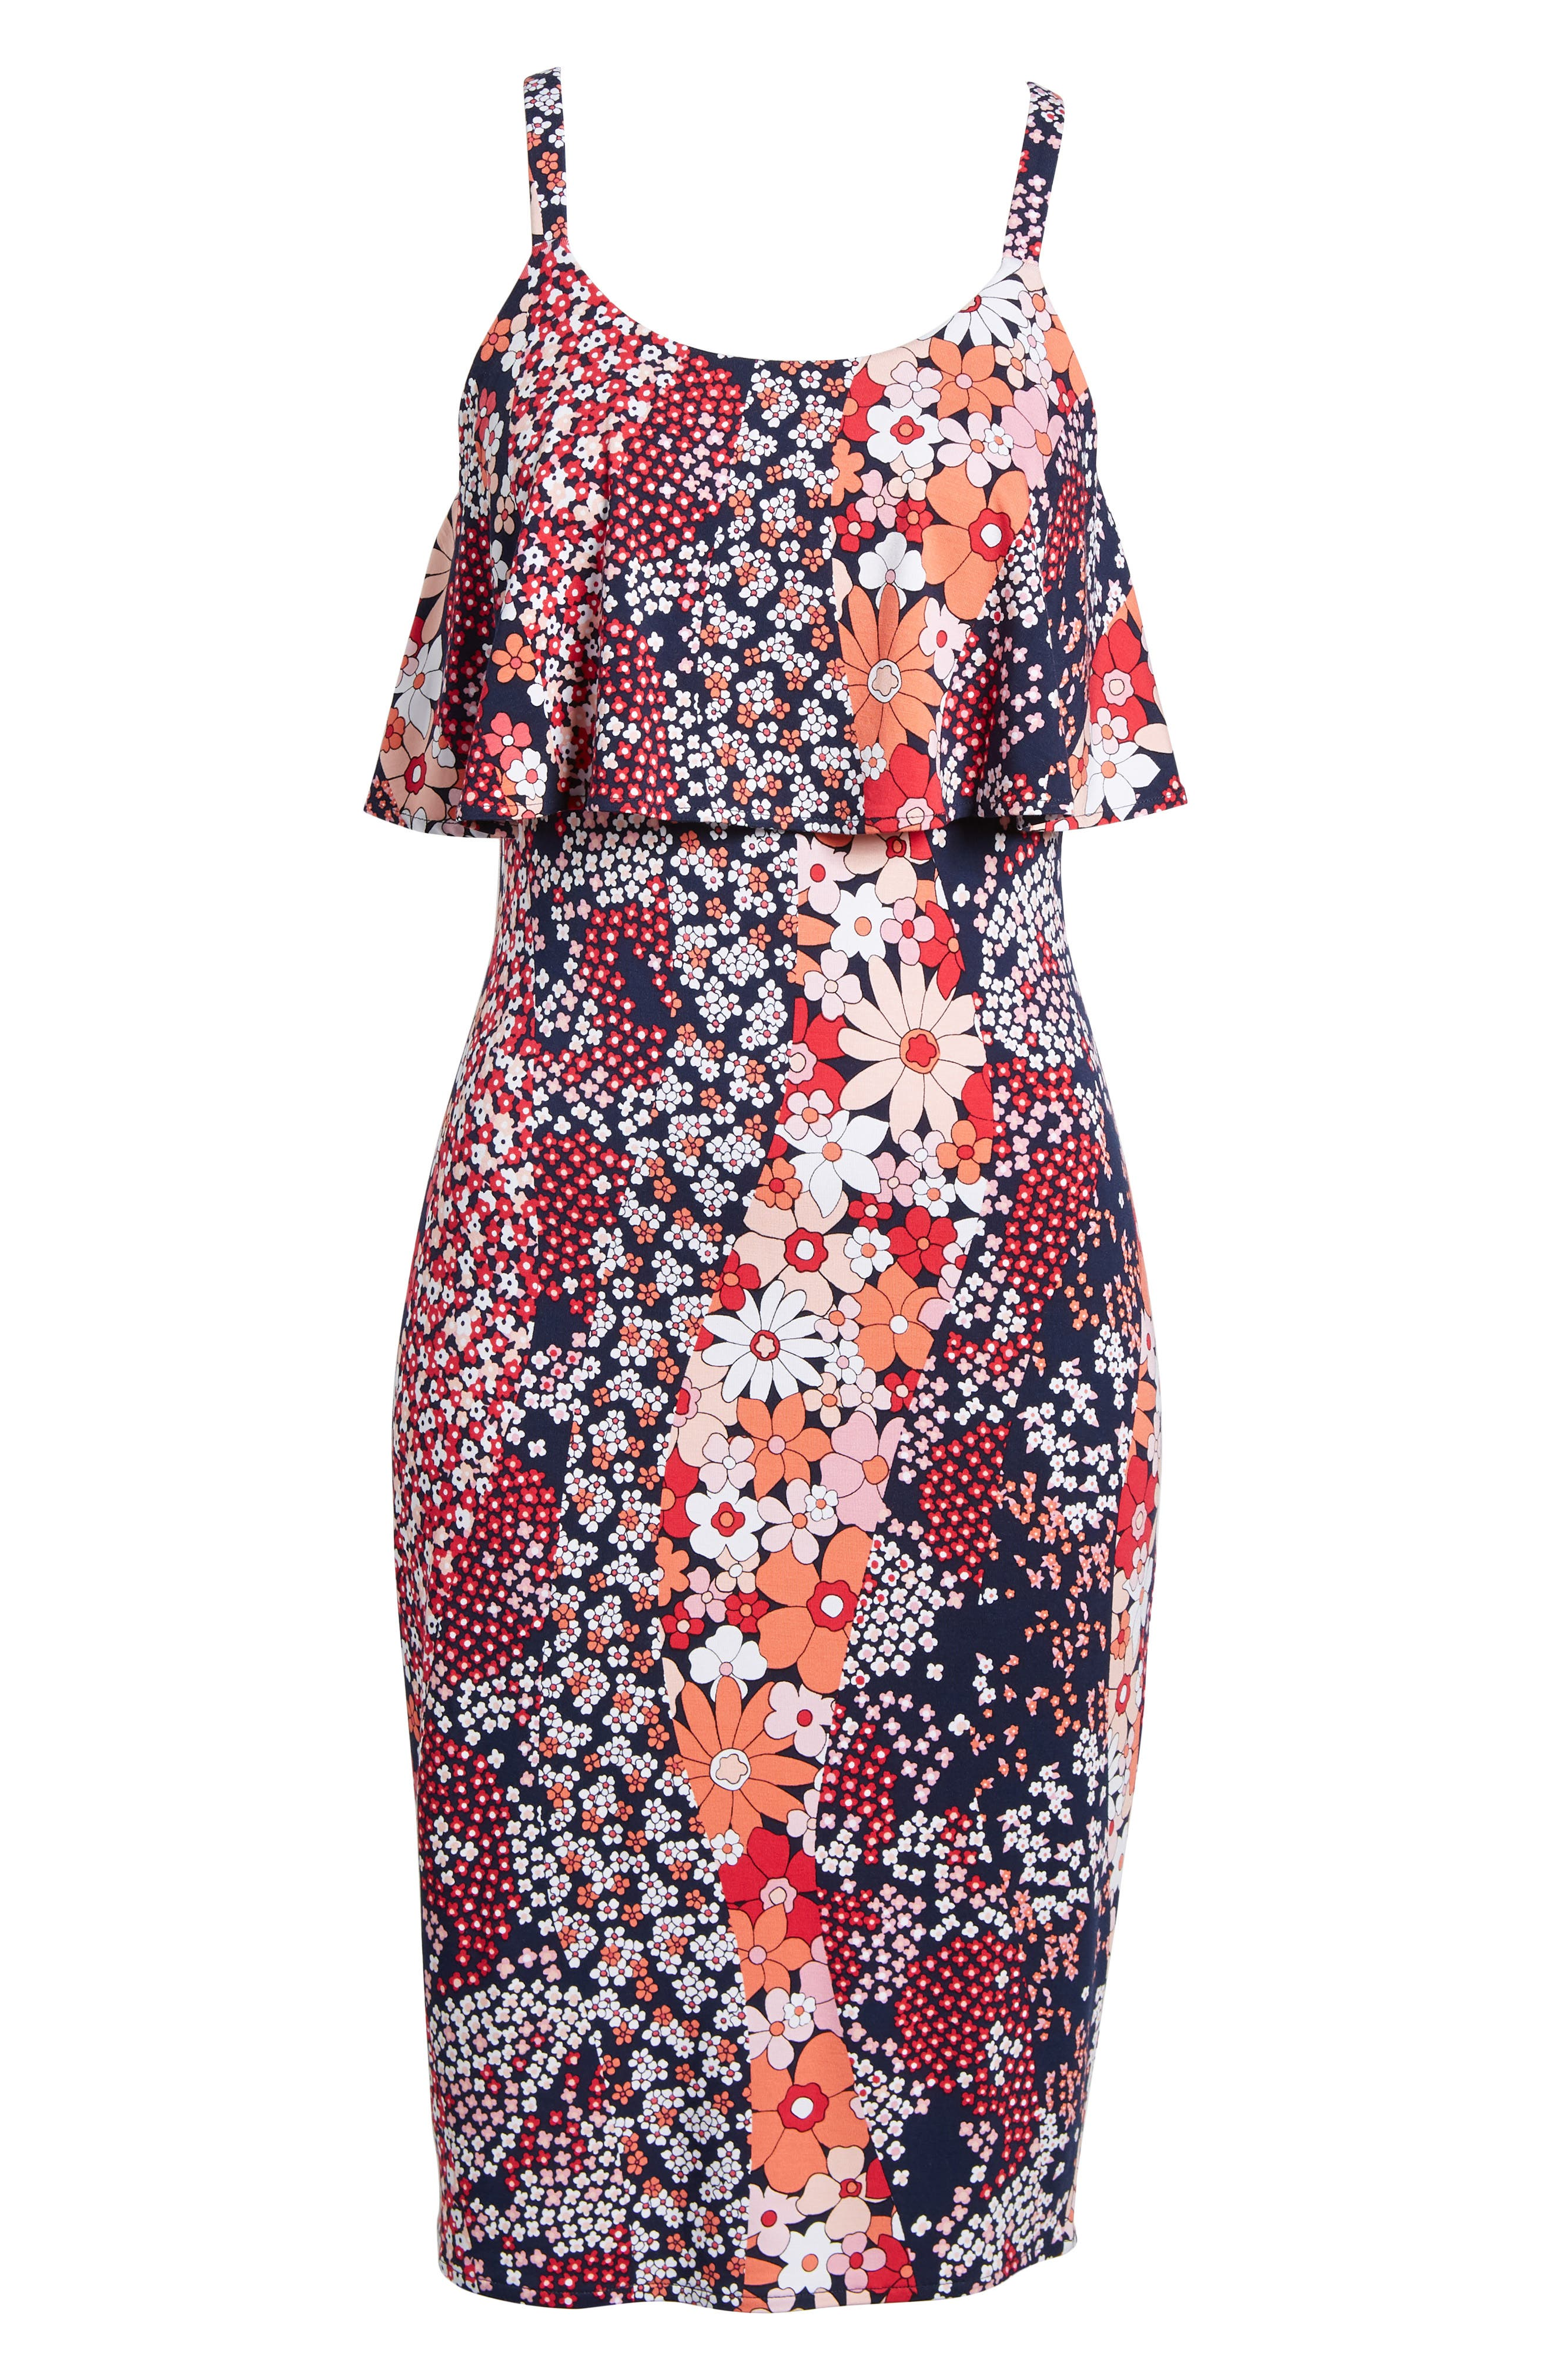 Print Floral Dress,                             Alternate thumbnail 6, color,                             678